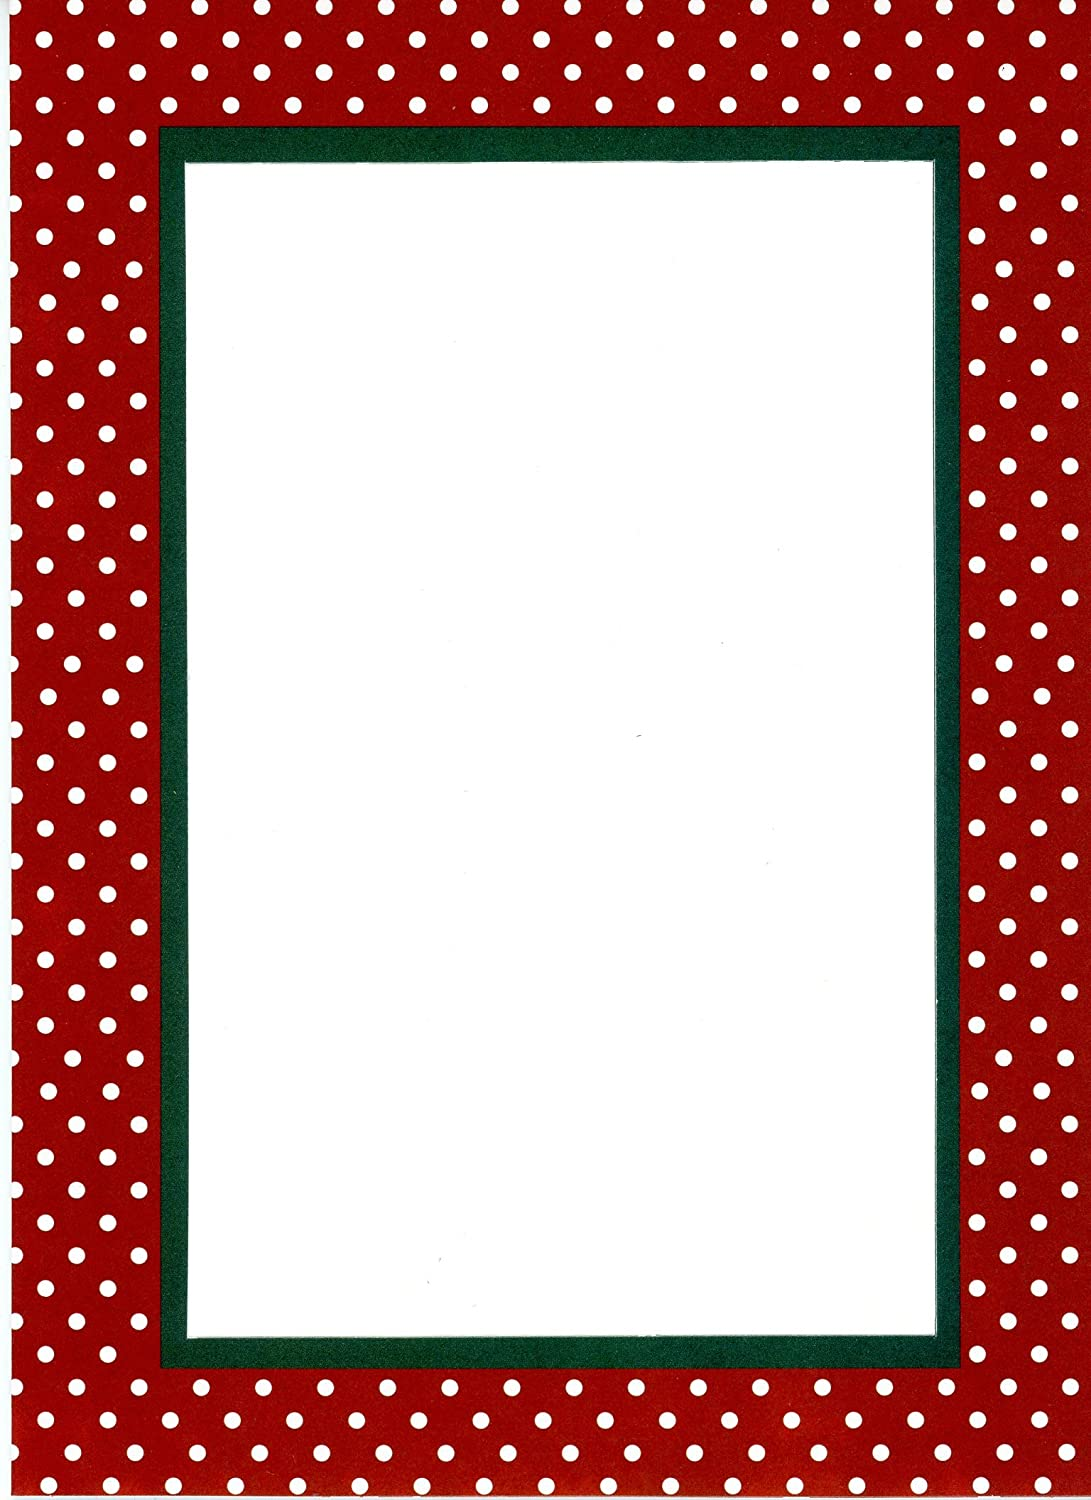 """4 x 6写真挿入ノートカード – 24パックby Plymouthカード 5"""" x 7"""" for a 4"""" x 6"""" print or photo レッド PARENT-COLLECTIONS B076B9XKH6 Christmas Dots Christmas Dots"""